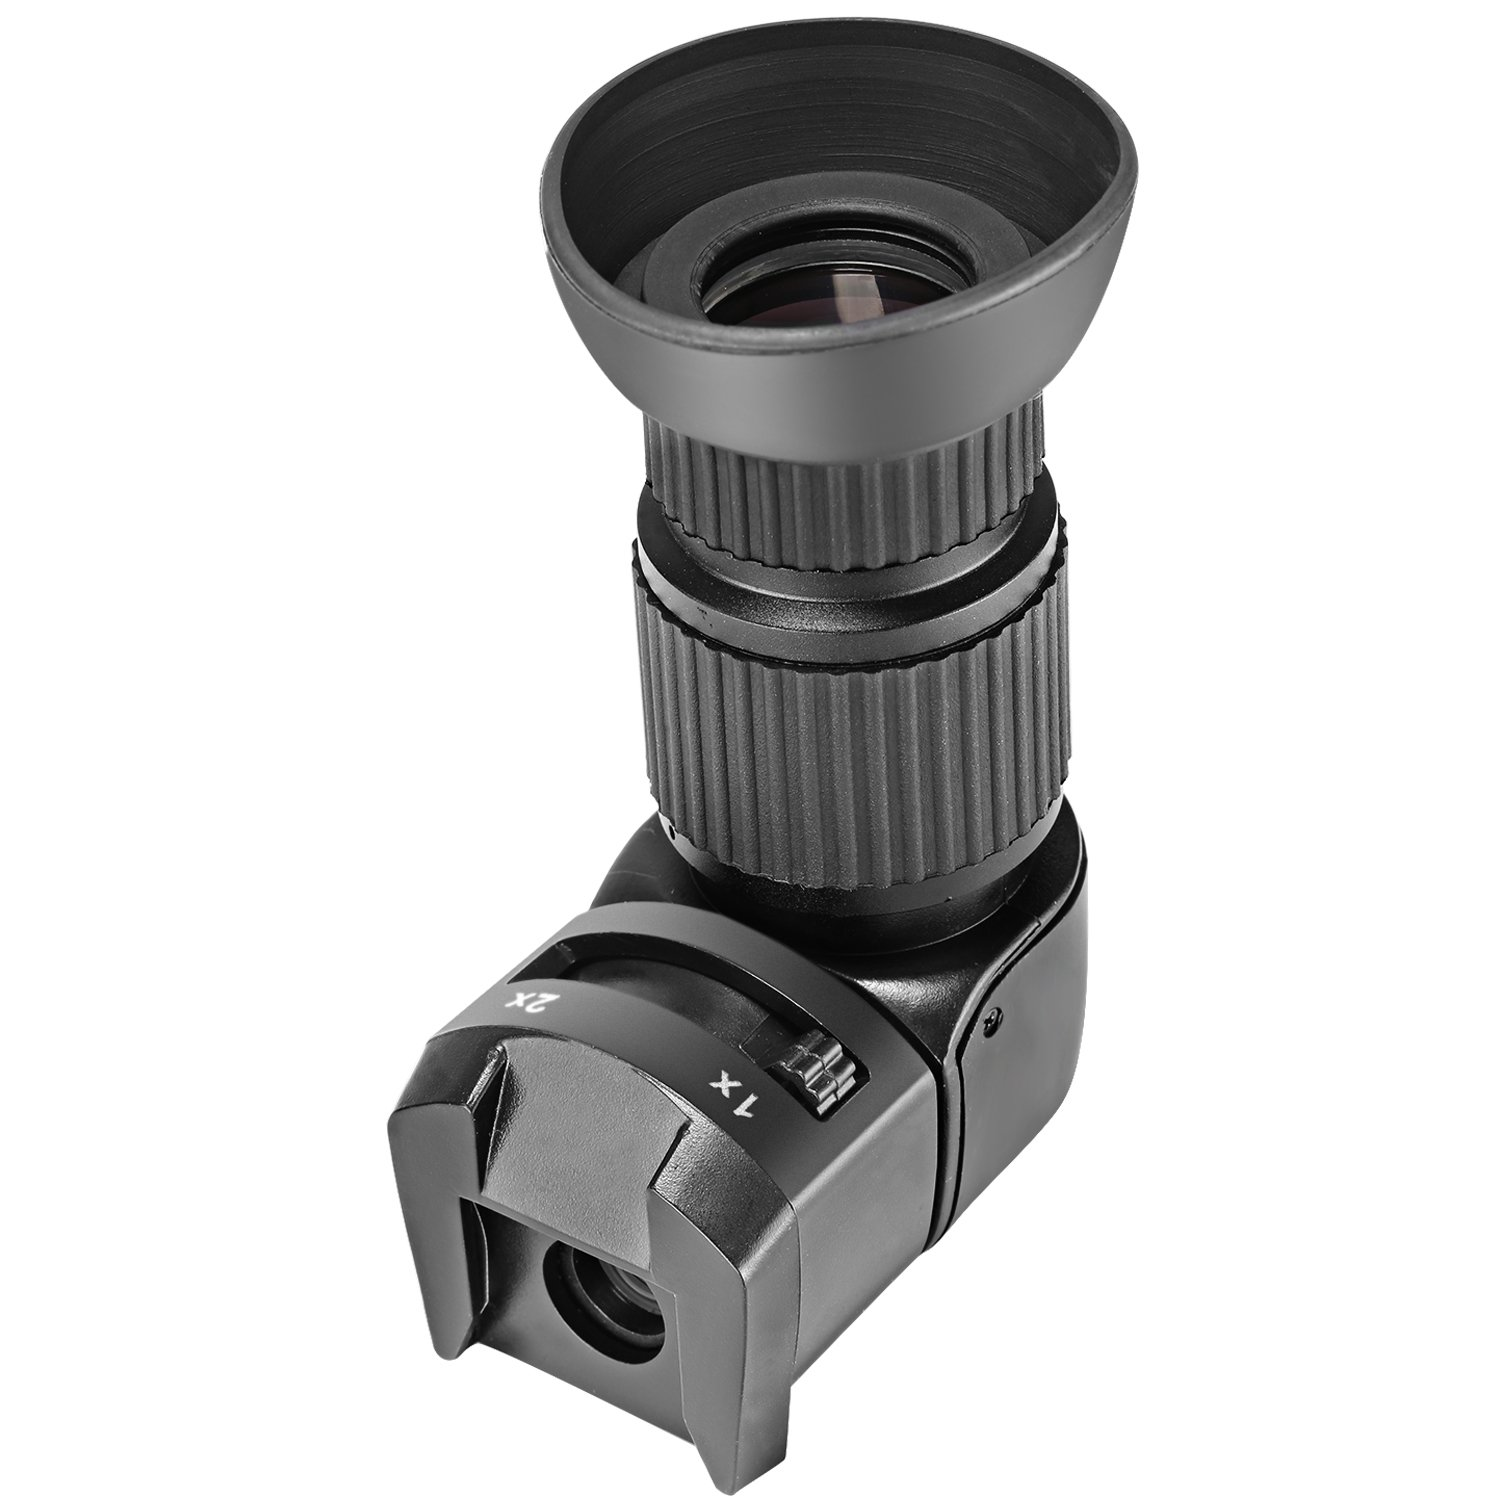 Neewer Perfect 1x-2x Right Angle Viewfinder for Canon, Nikon, Sony, Pentax, Panasonic and Other Digital SLR Cameras by Neewer